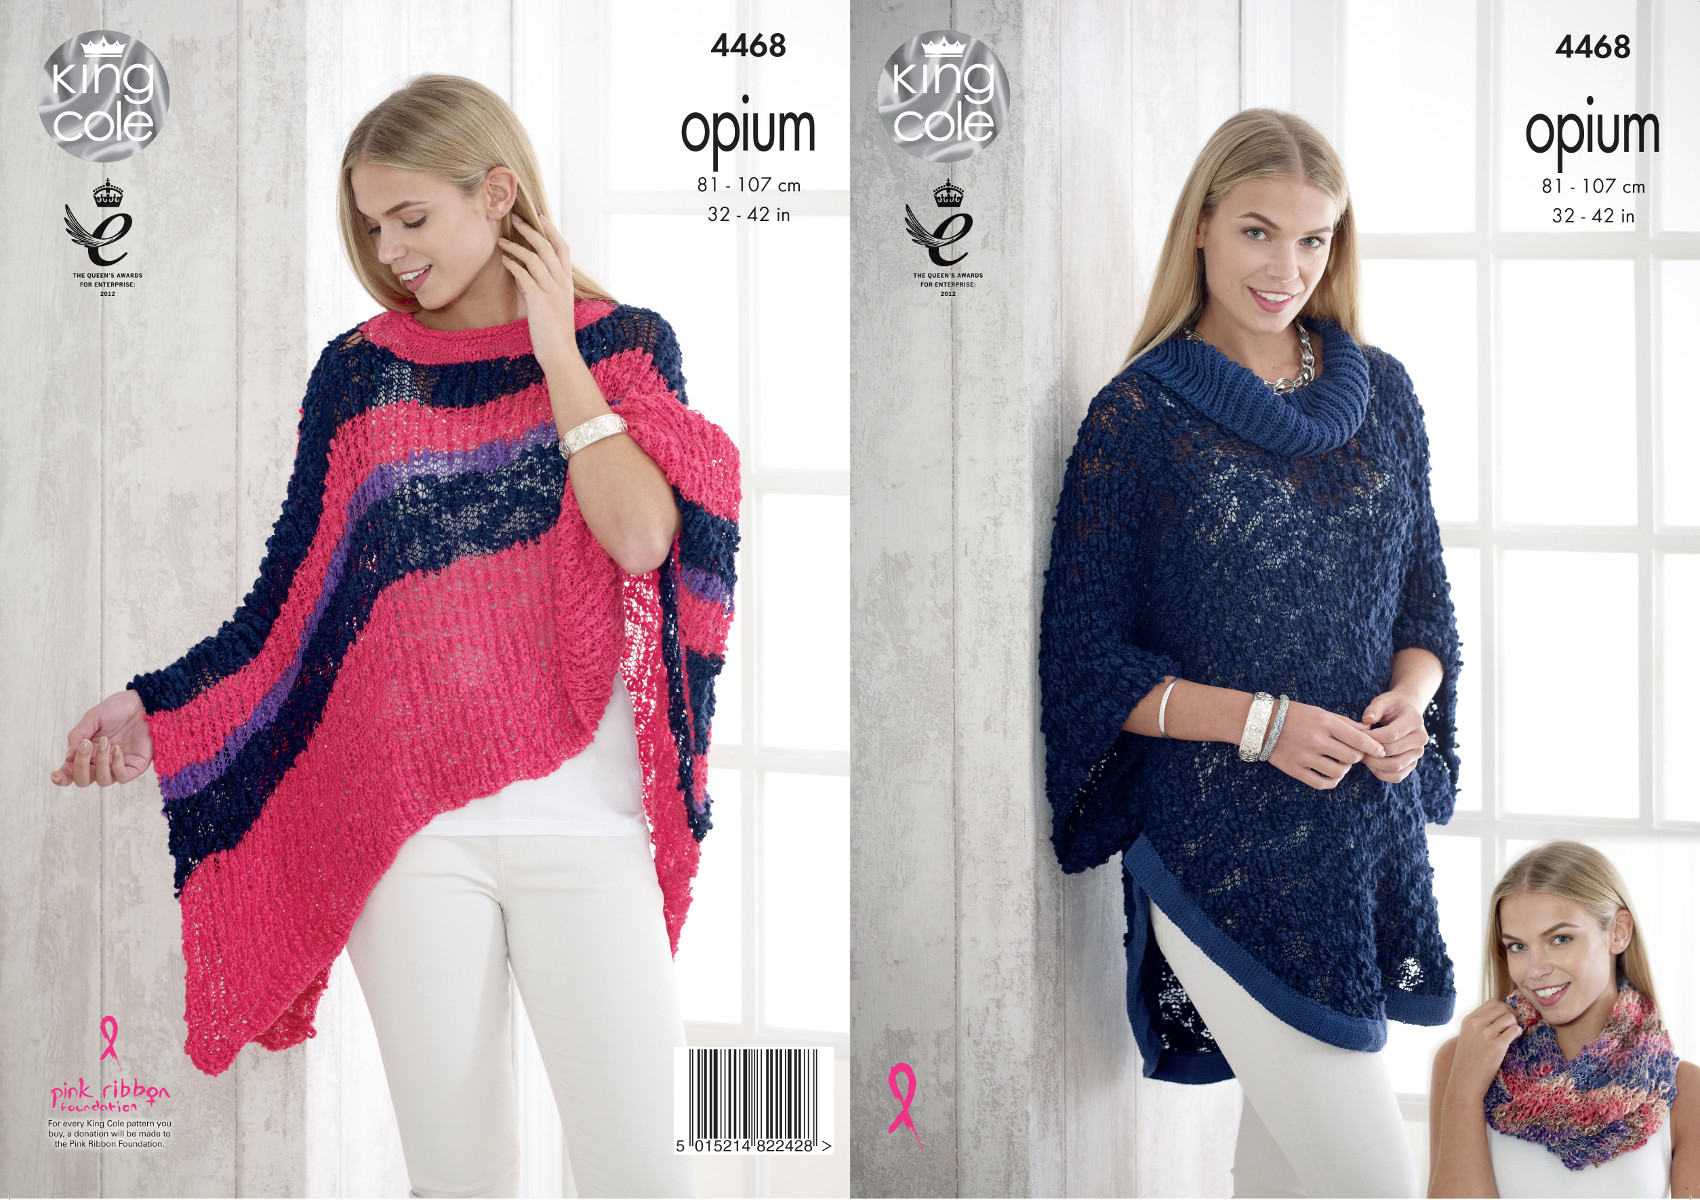 King Cole Poncho Knitting Pattern : Ladies Cowl Neck Poncho Cape Snood Knitting Pattern Womens King Cole Opium 44...